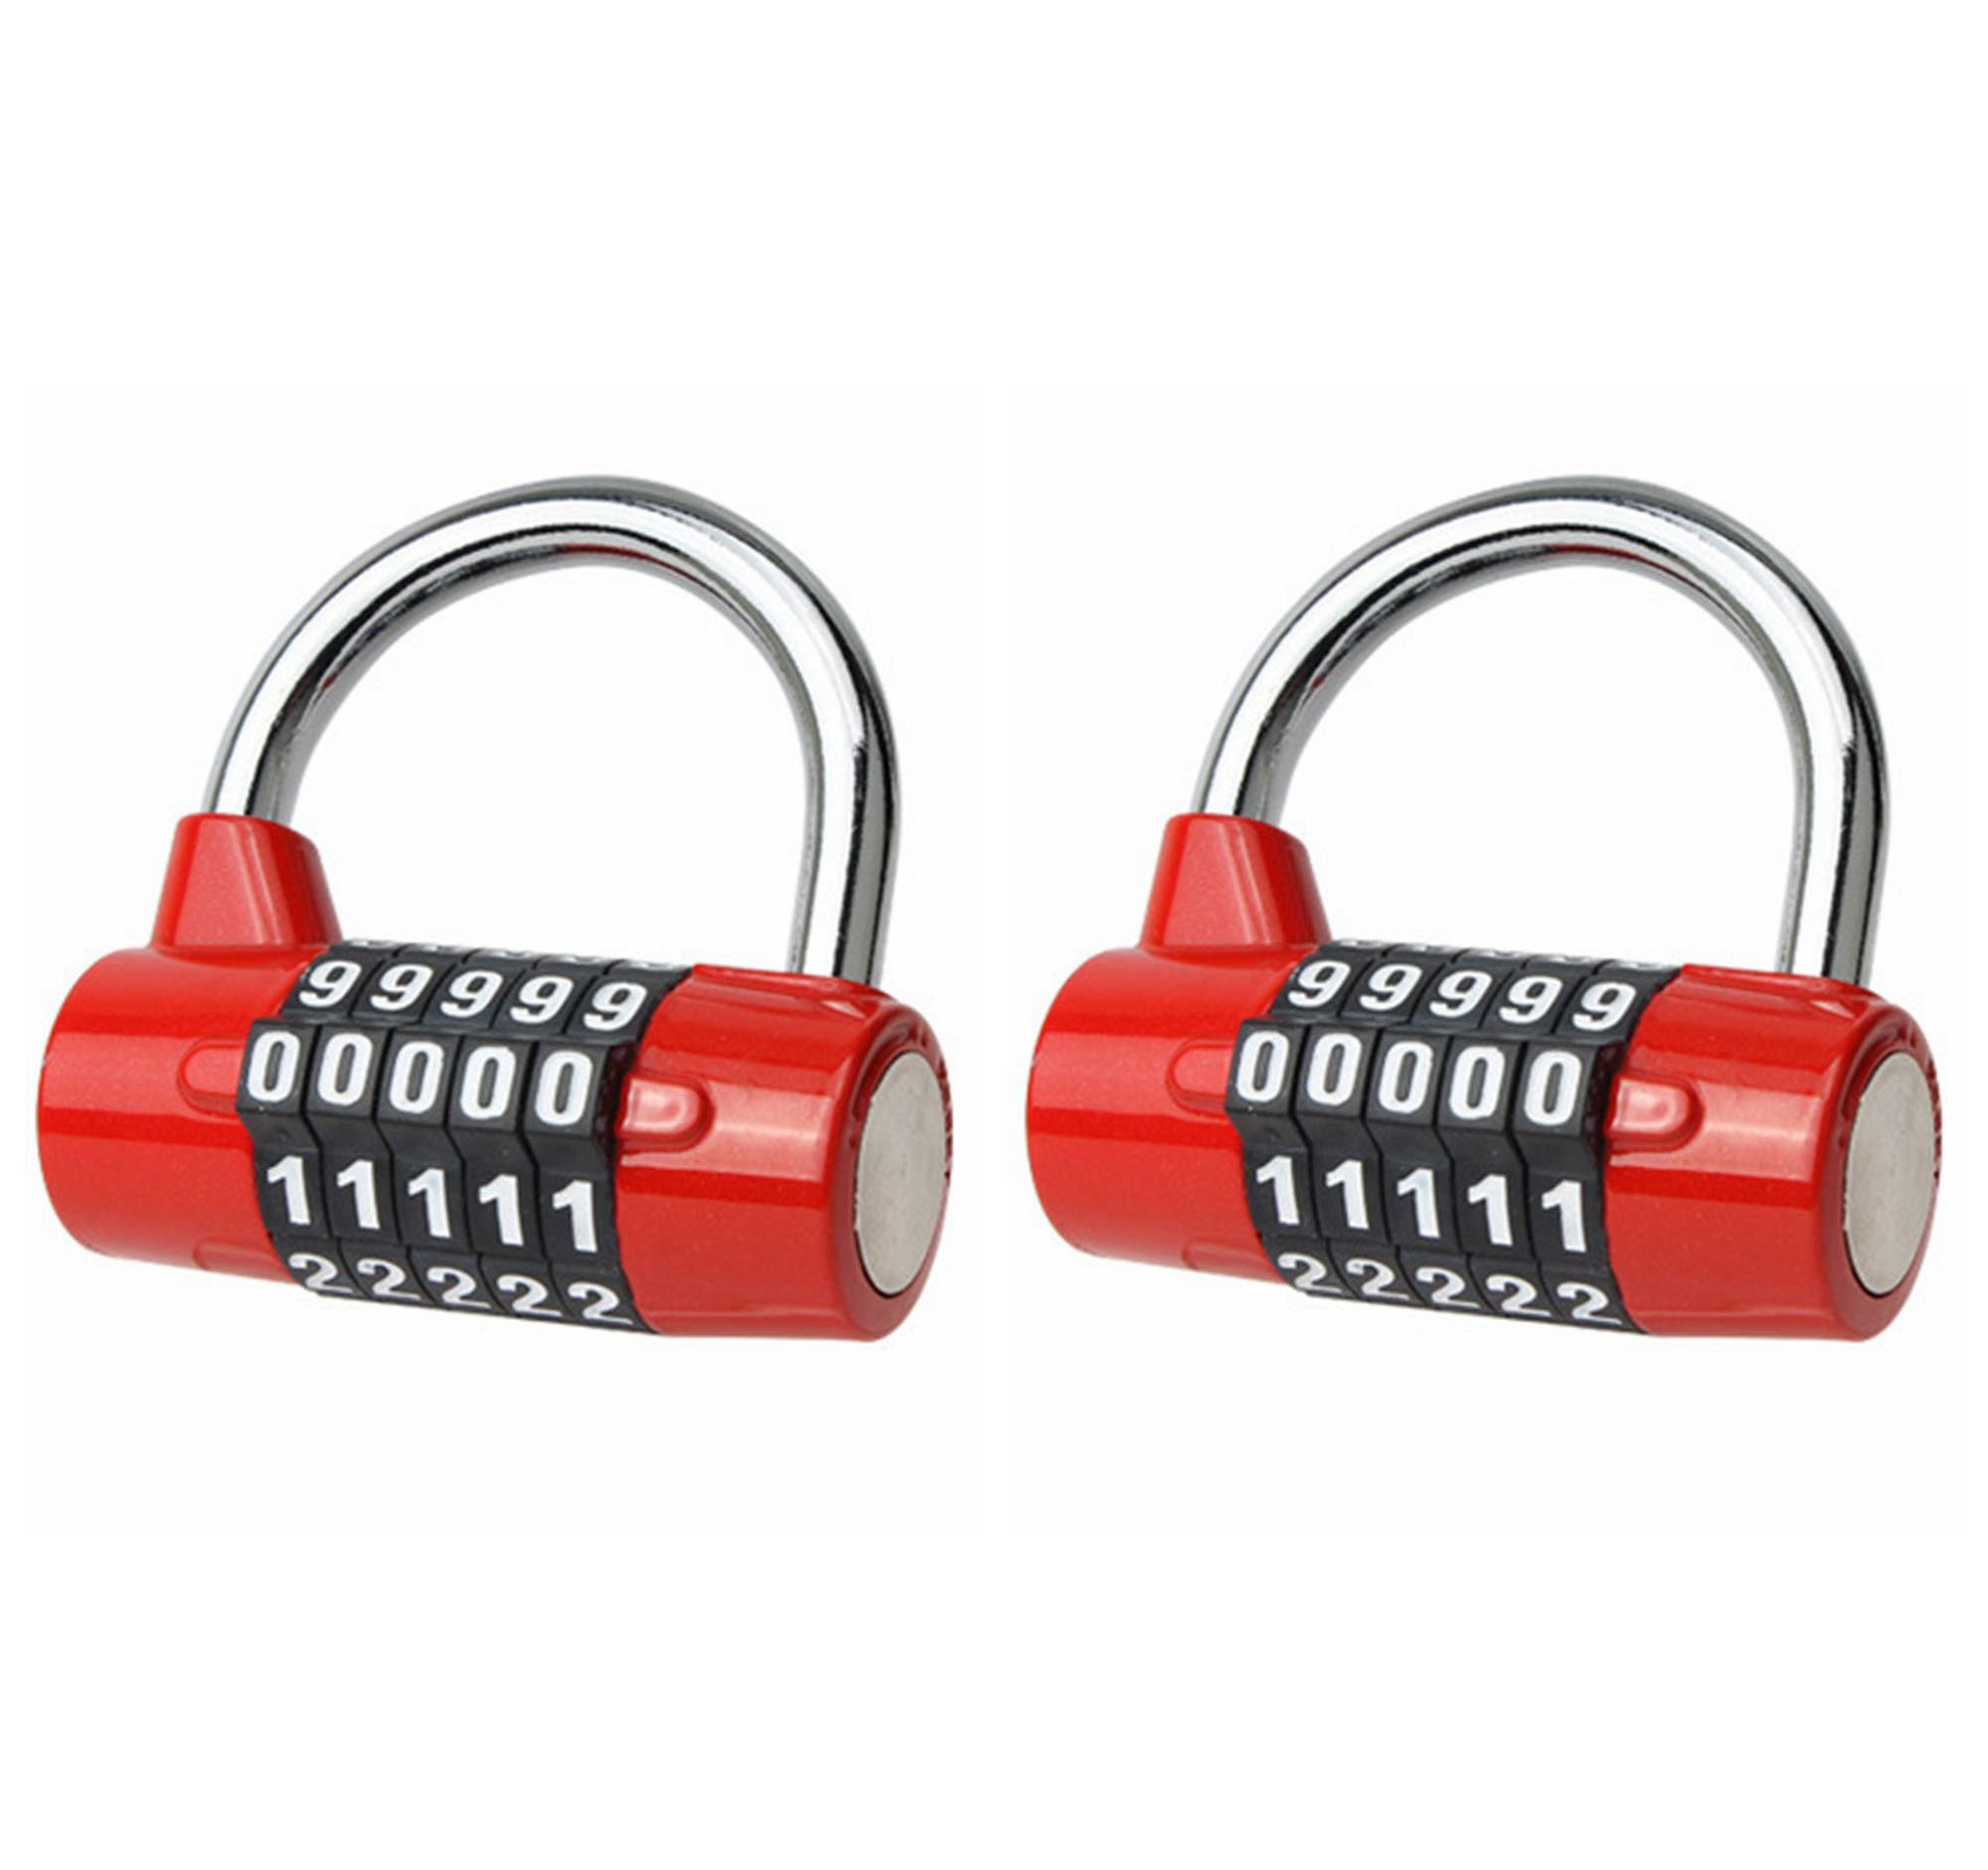 L-Anan Combination Lock, 5-Digit Re-settable Padlock, Security Padlock, Gym Lock, Lock Padlock for School, Home, Office, Travel, Gym, Bicycle, Toolbox, Luggage, Cabinet (2 Pack) (Red) by L-Anan